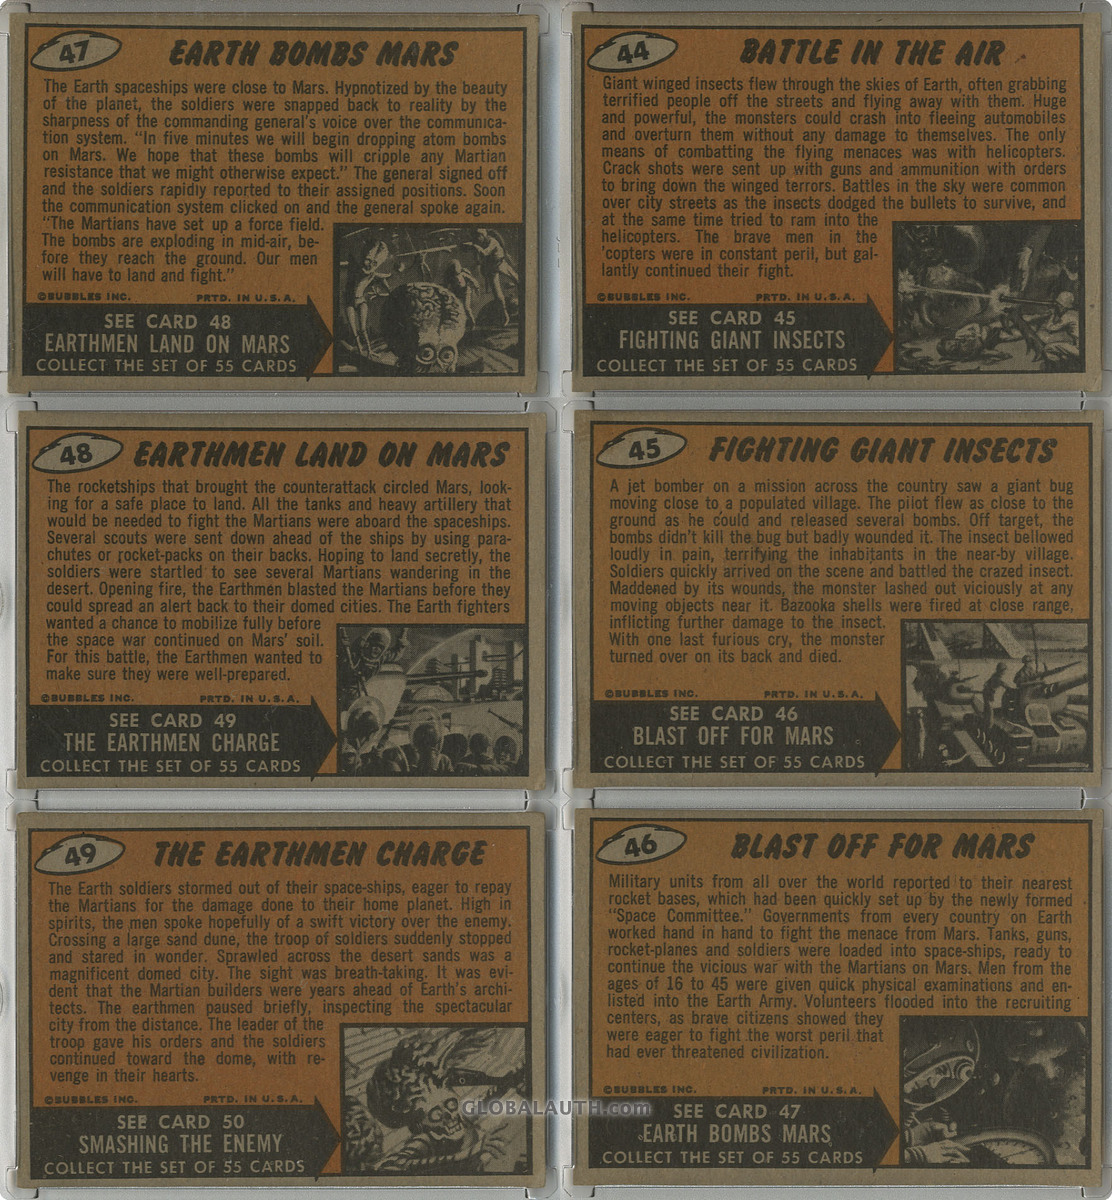 1962-mars-attacks-non-sports-card-set-back-image.jpg, #15